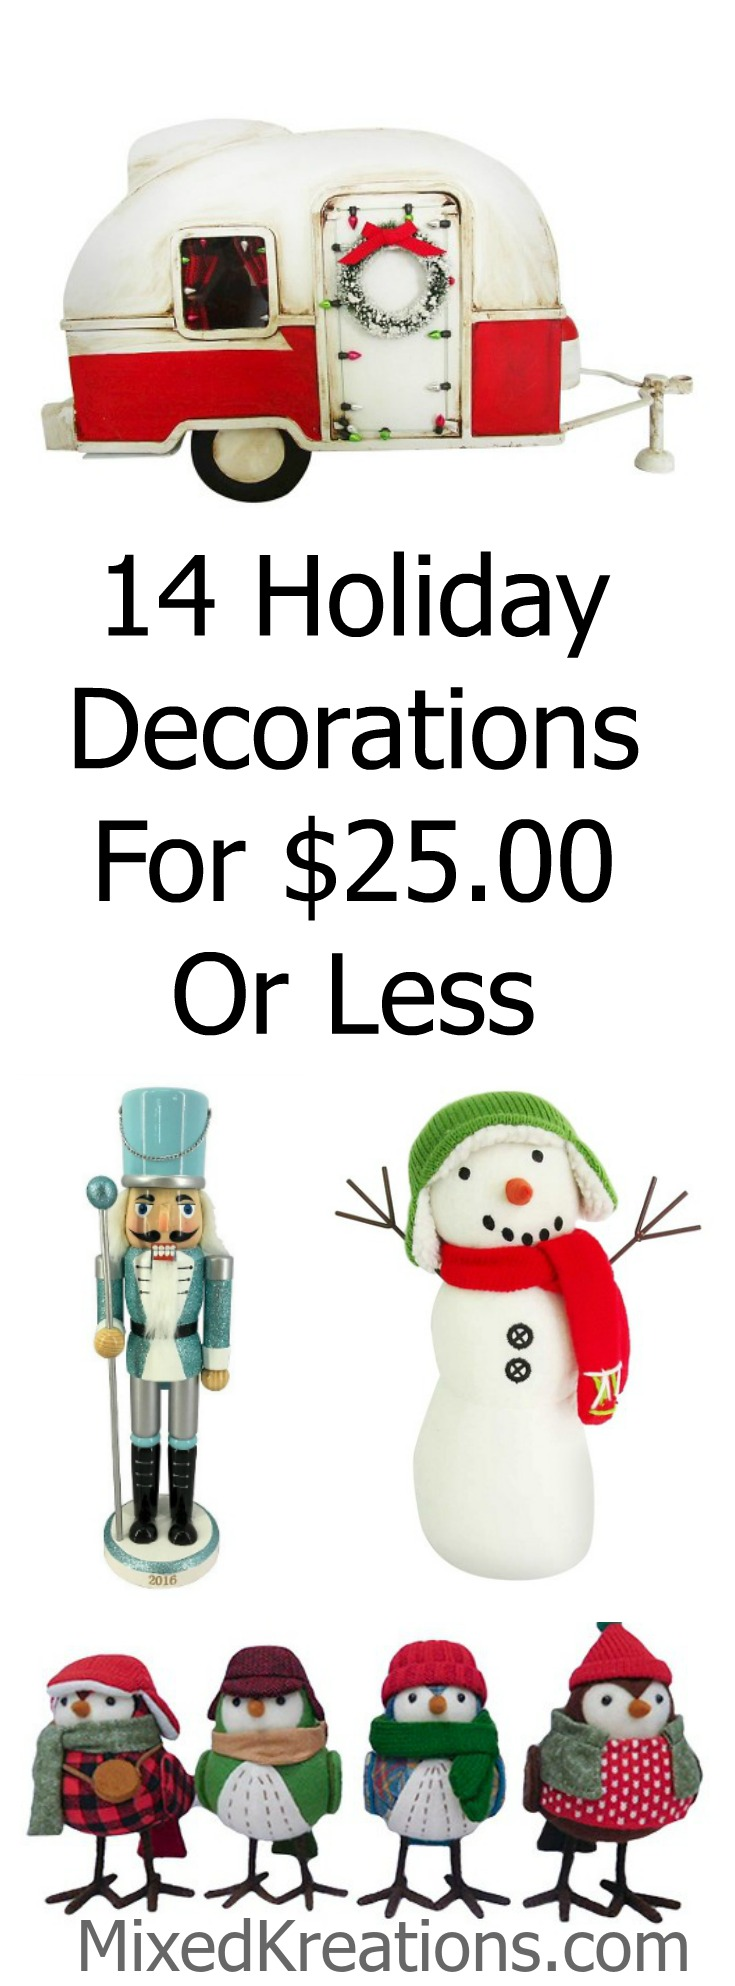 14 holiday decorations for $25.00 or less